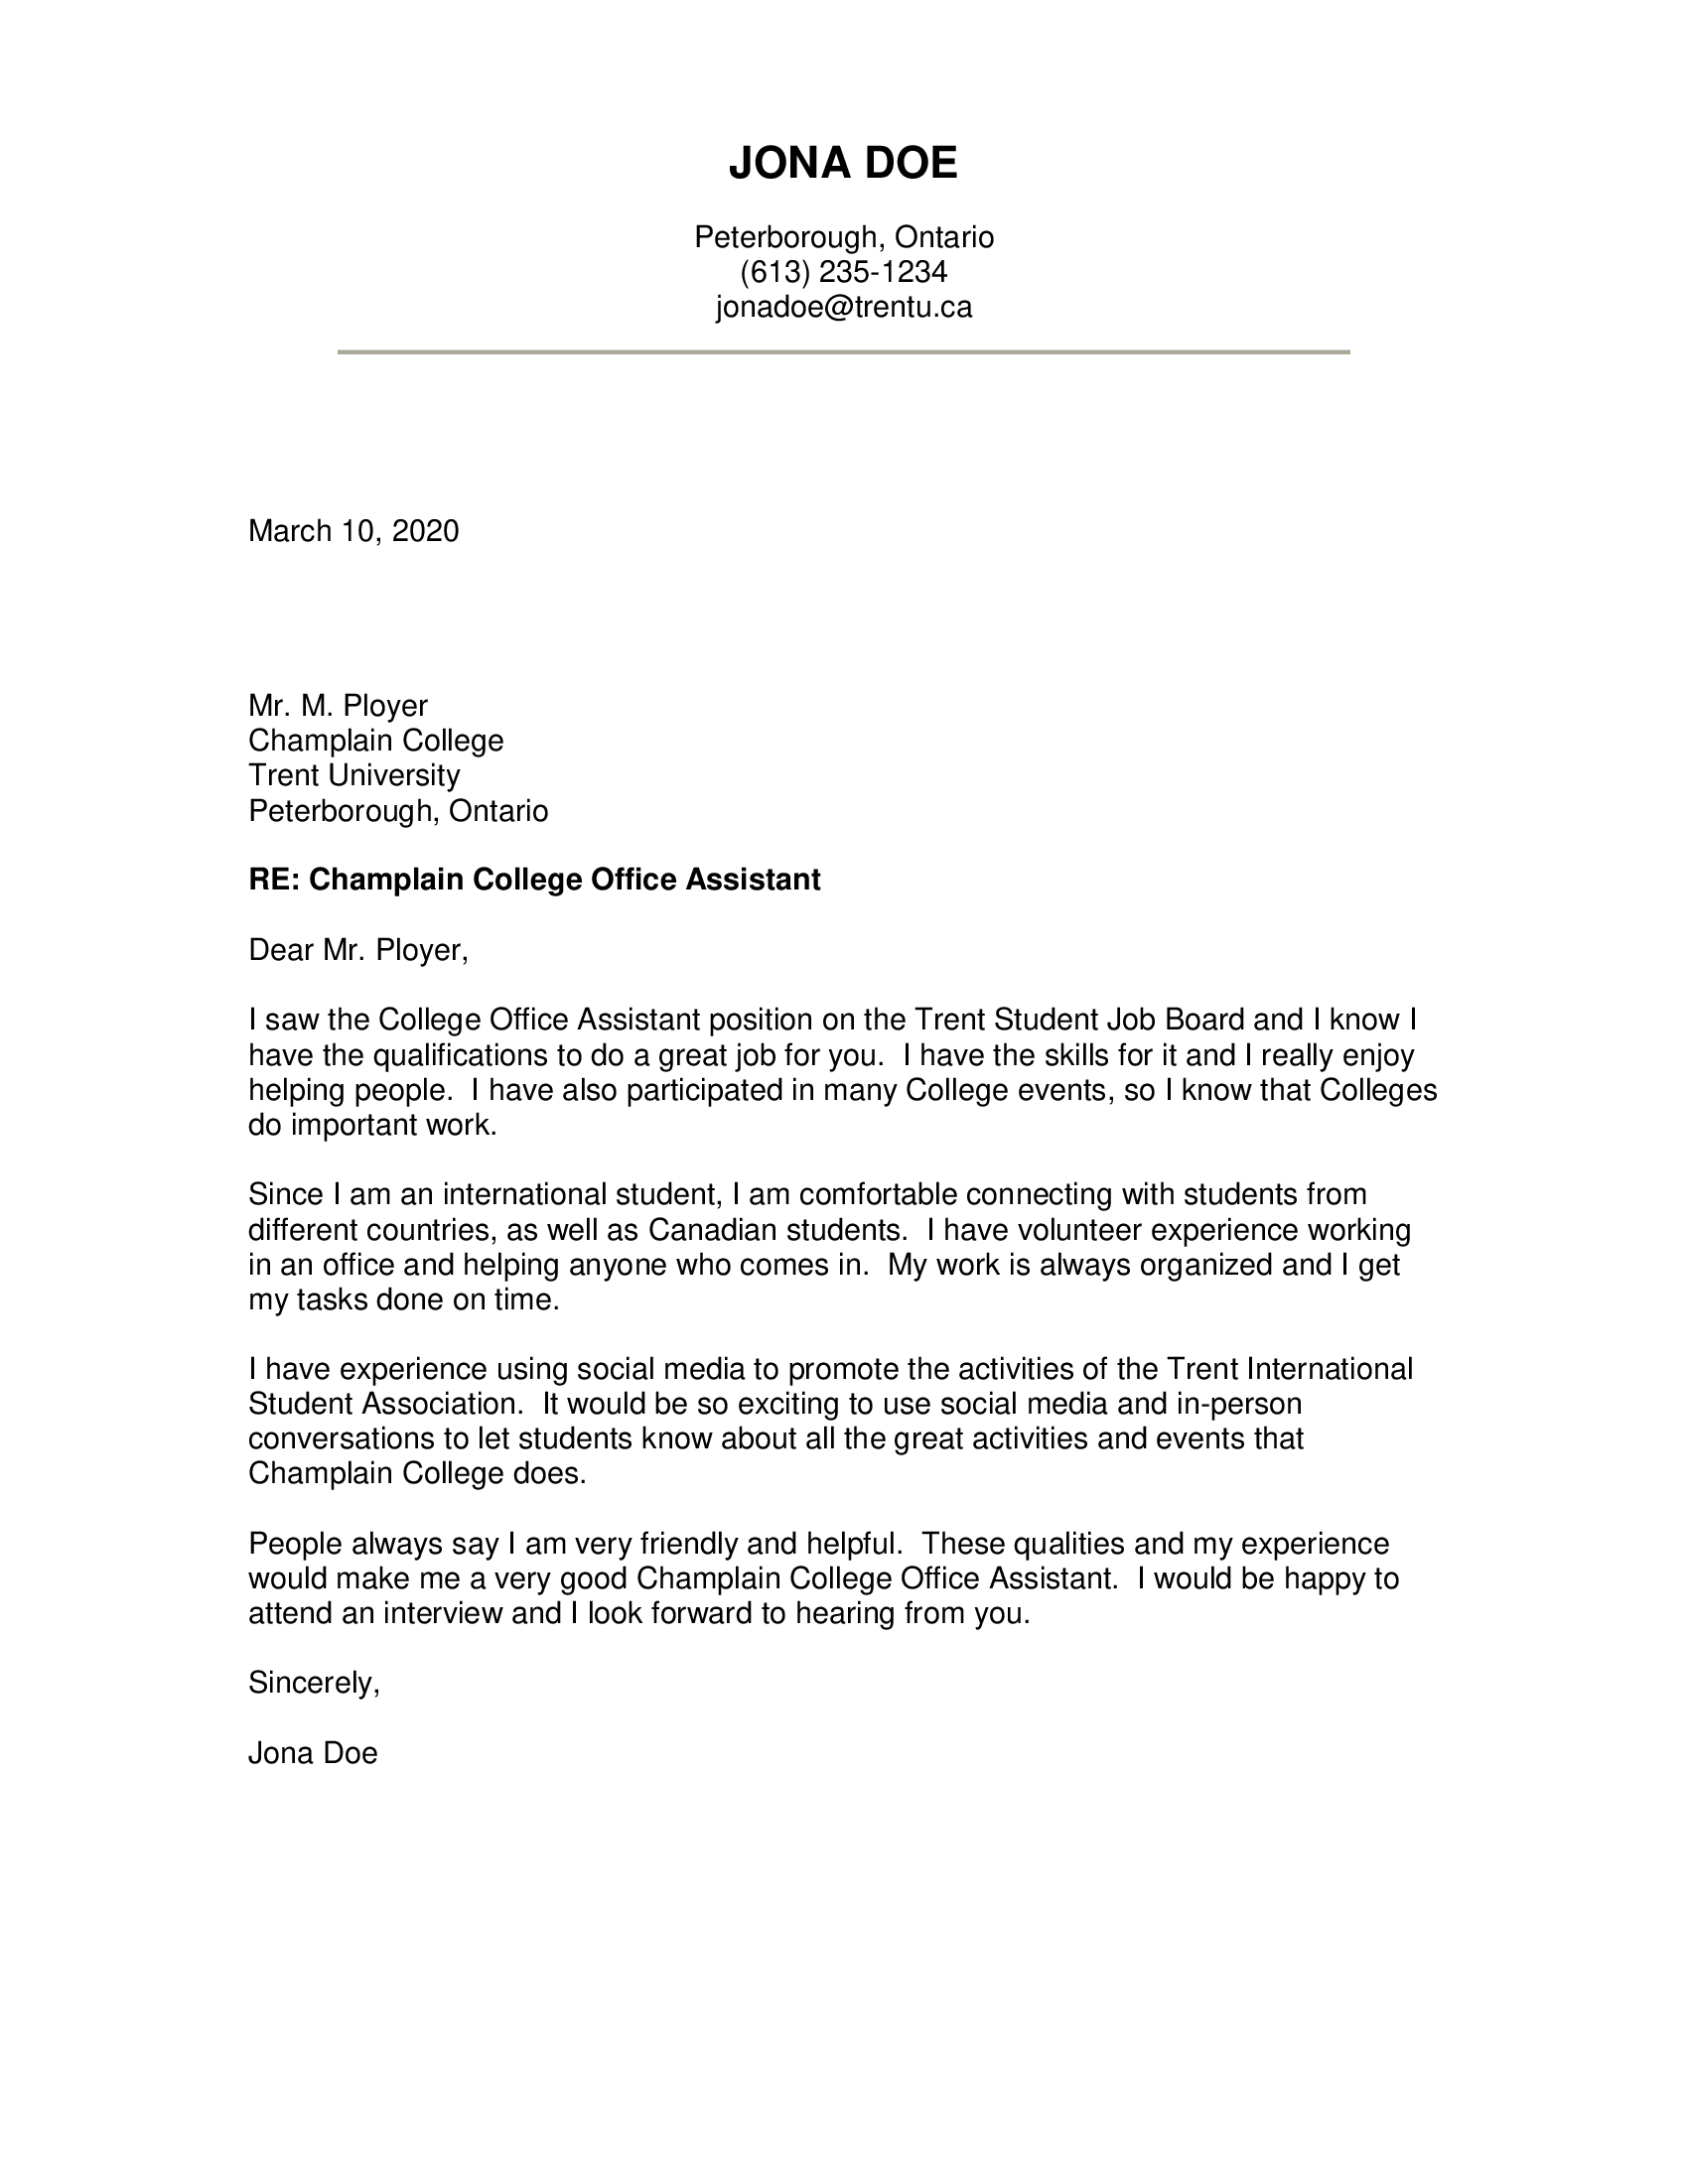 Simple Cover Letter For Administrative Assistant from www.trentu.ca